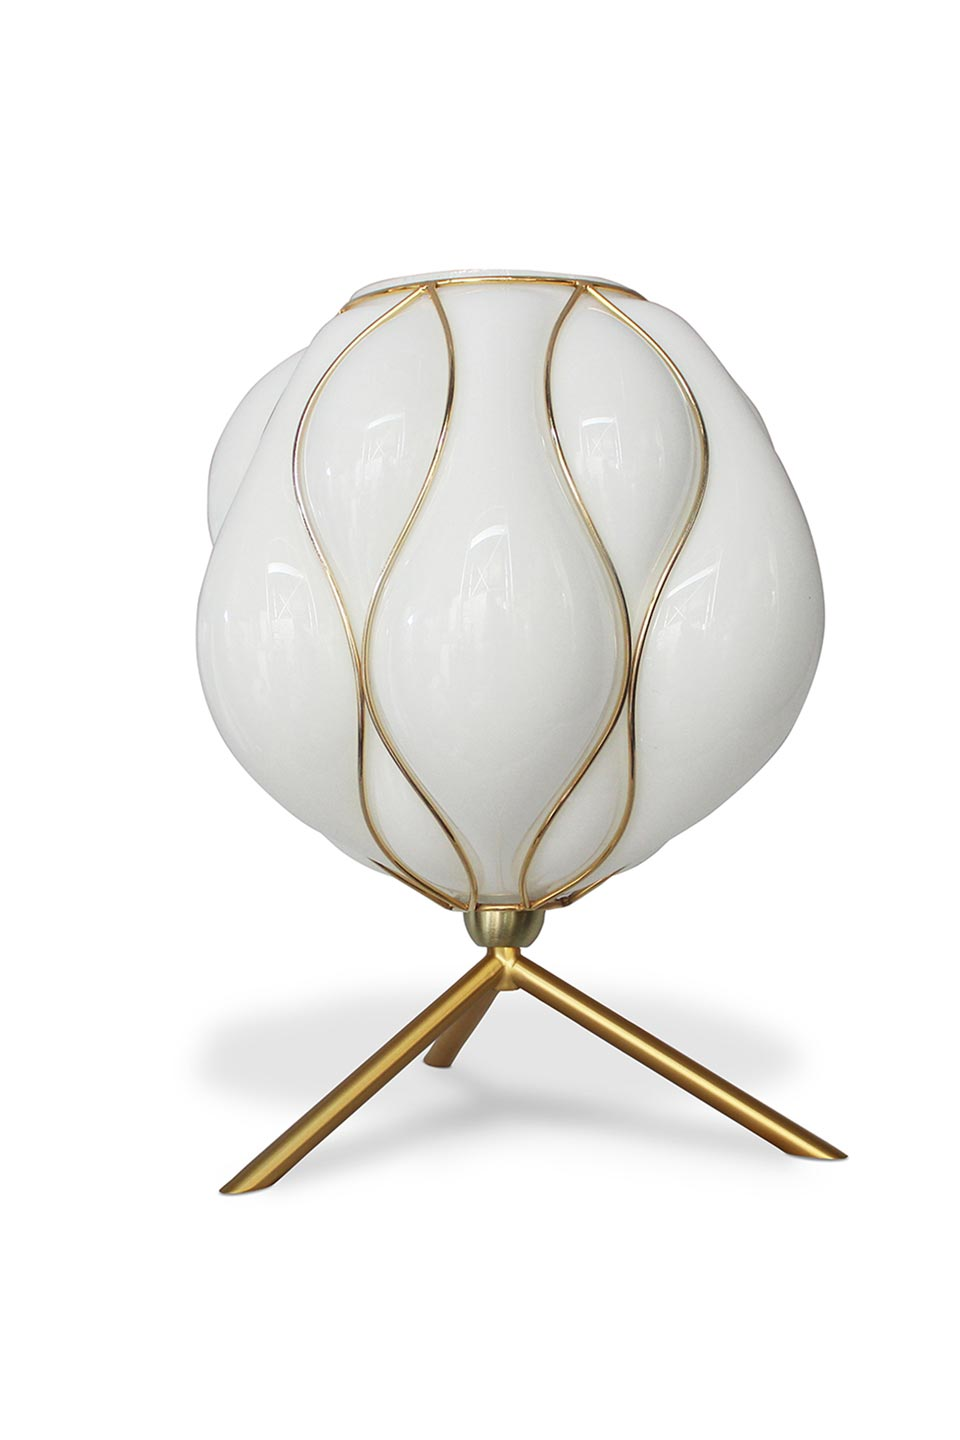 Casamance Table Lamp In White Opal Glass And Brushed Brass Luminaire Concept Verre Ref 19050064